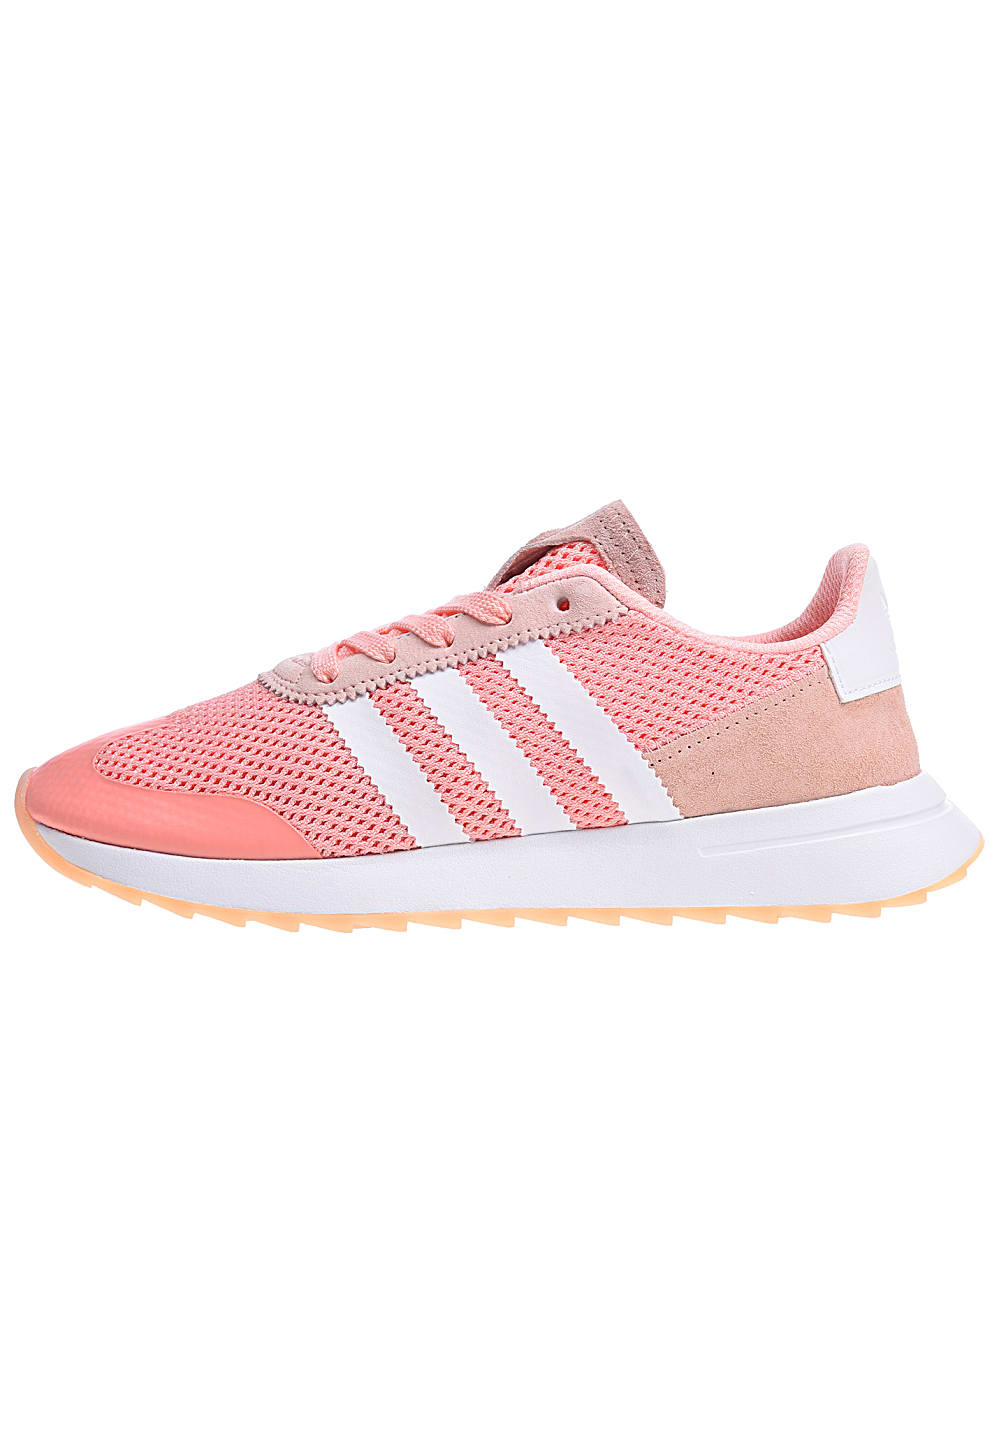 Adidas rose donne